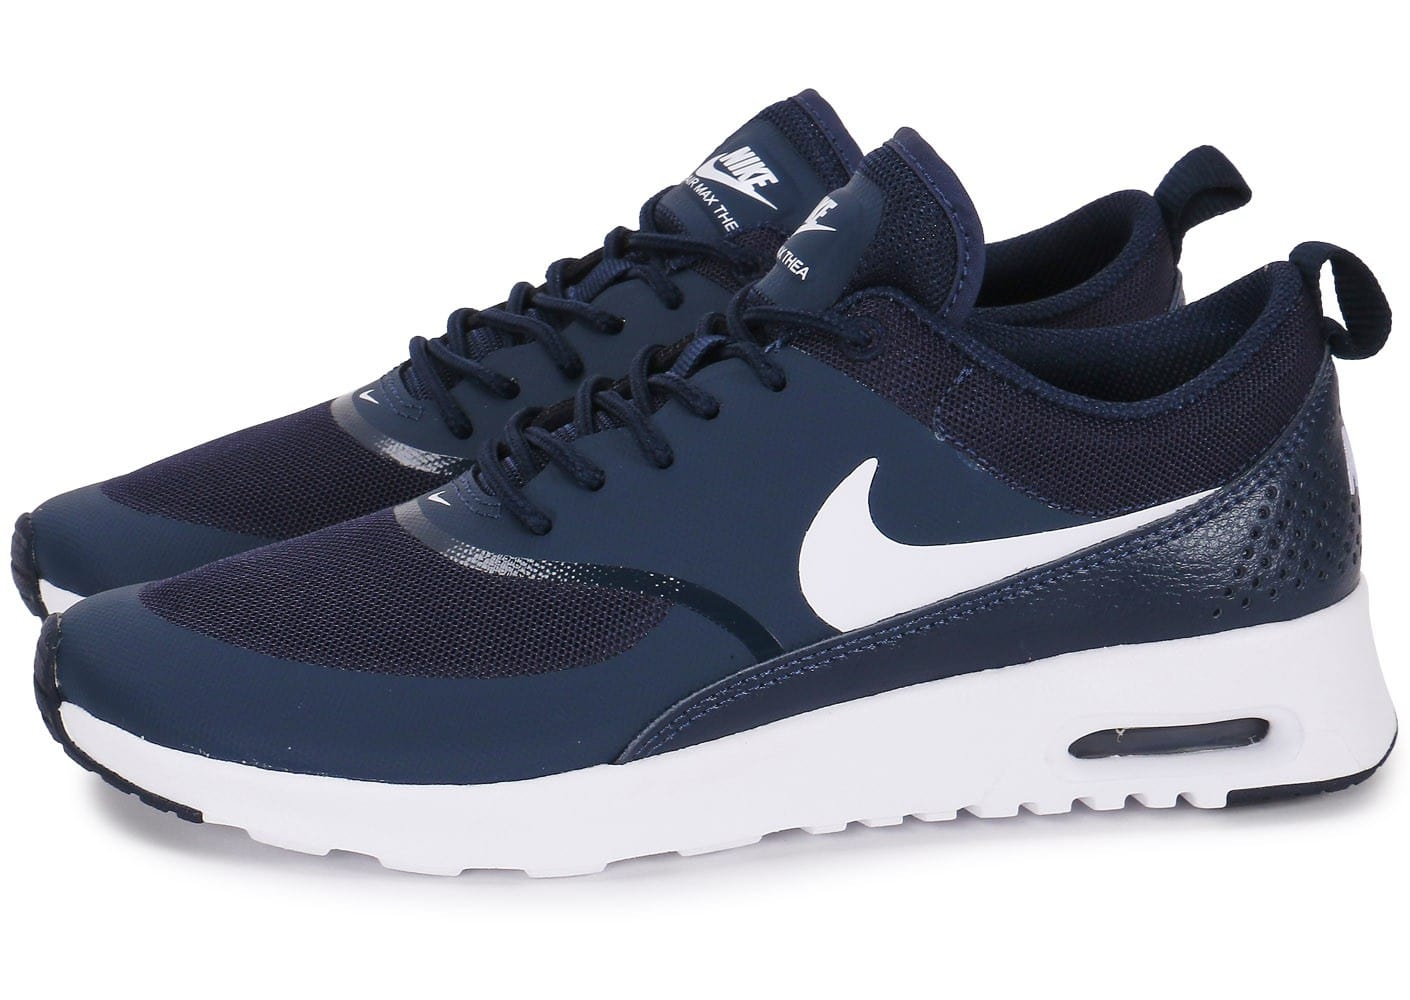 nike air max thea bleu marine chaussures chaussures chausport. Black Bedroom Furniture Sets. Home Design Ideas